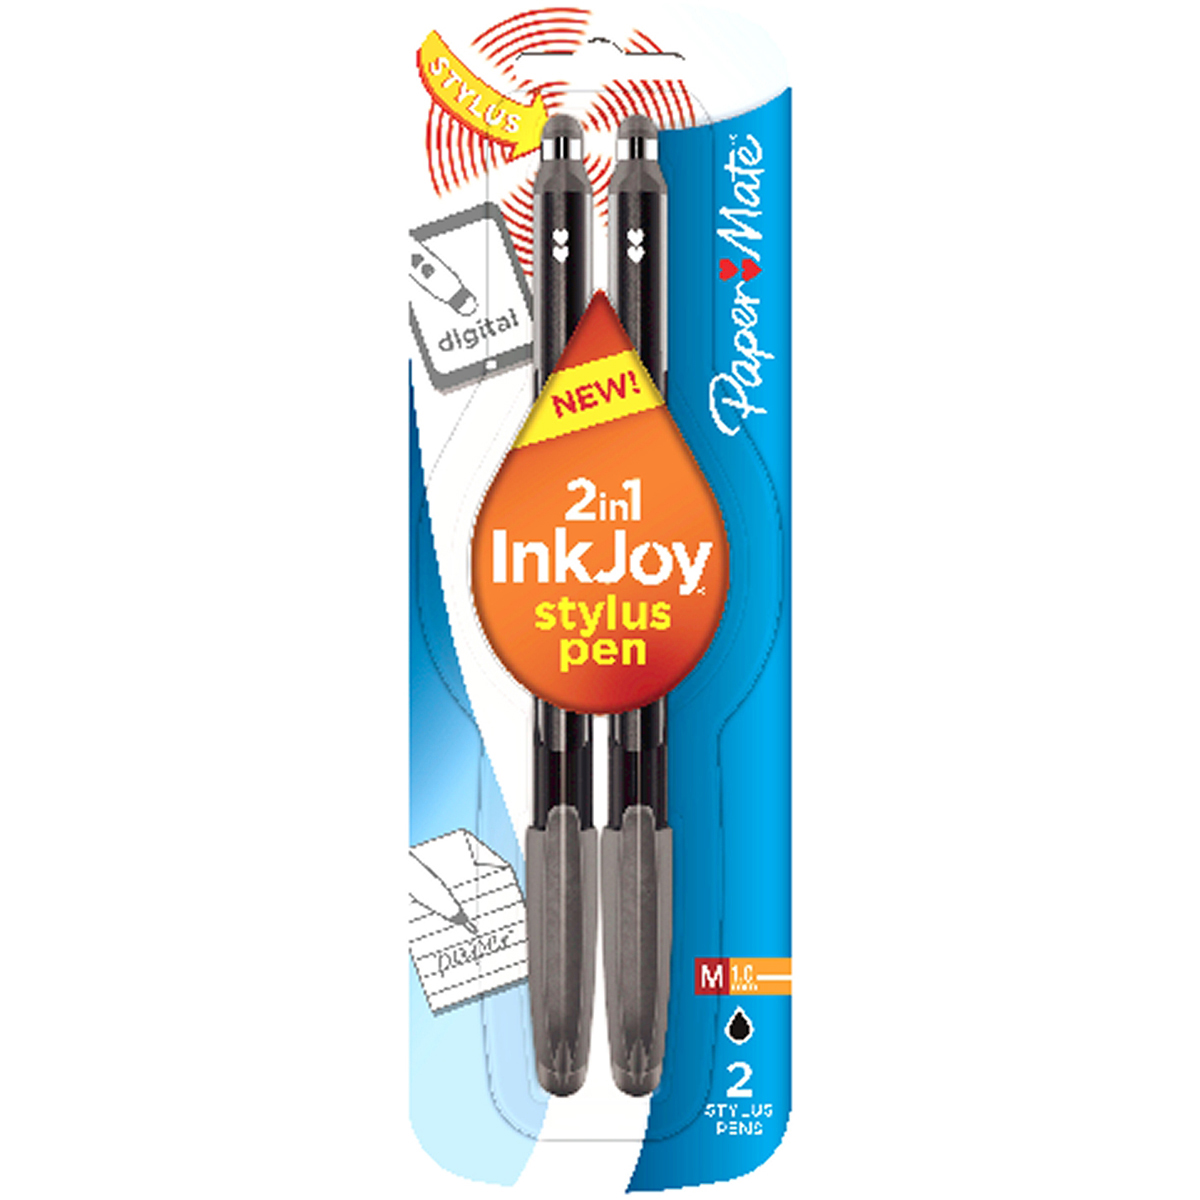 InkJoy Gel Pen 1.0mm with Stylus 2/Pkg-Black